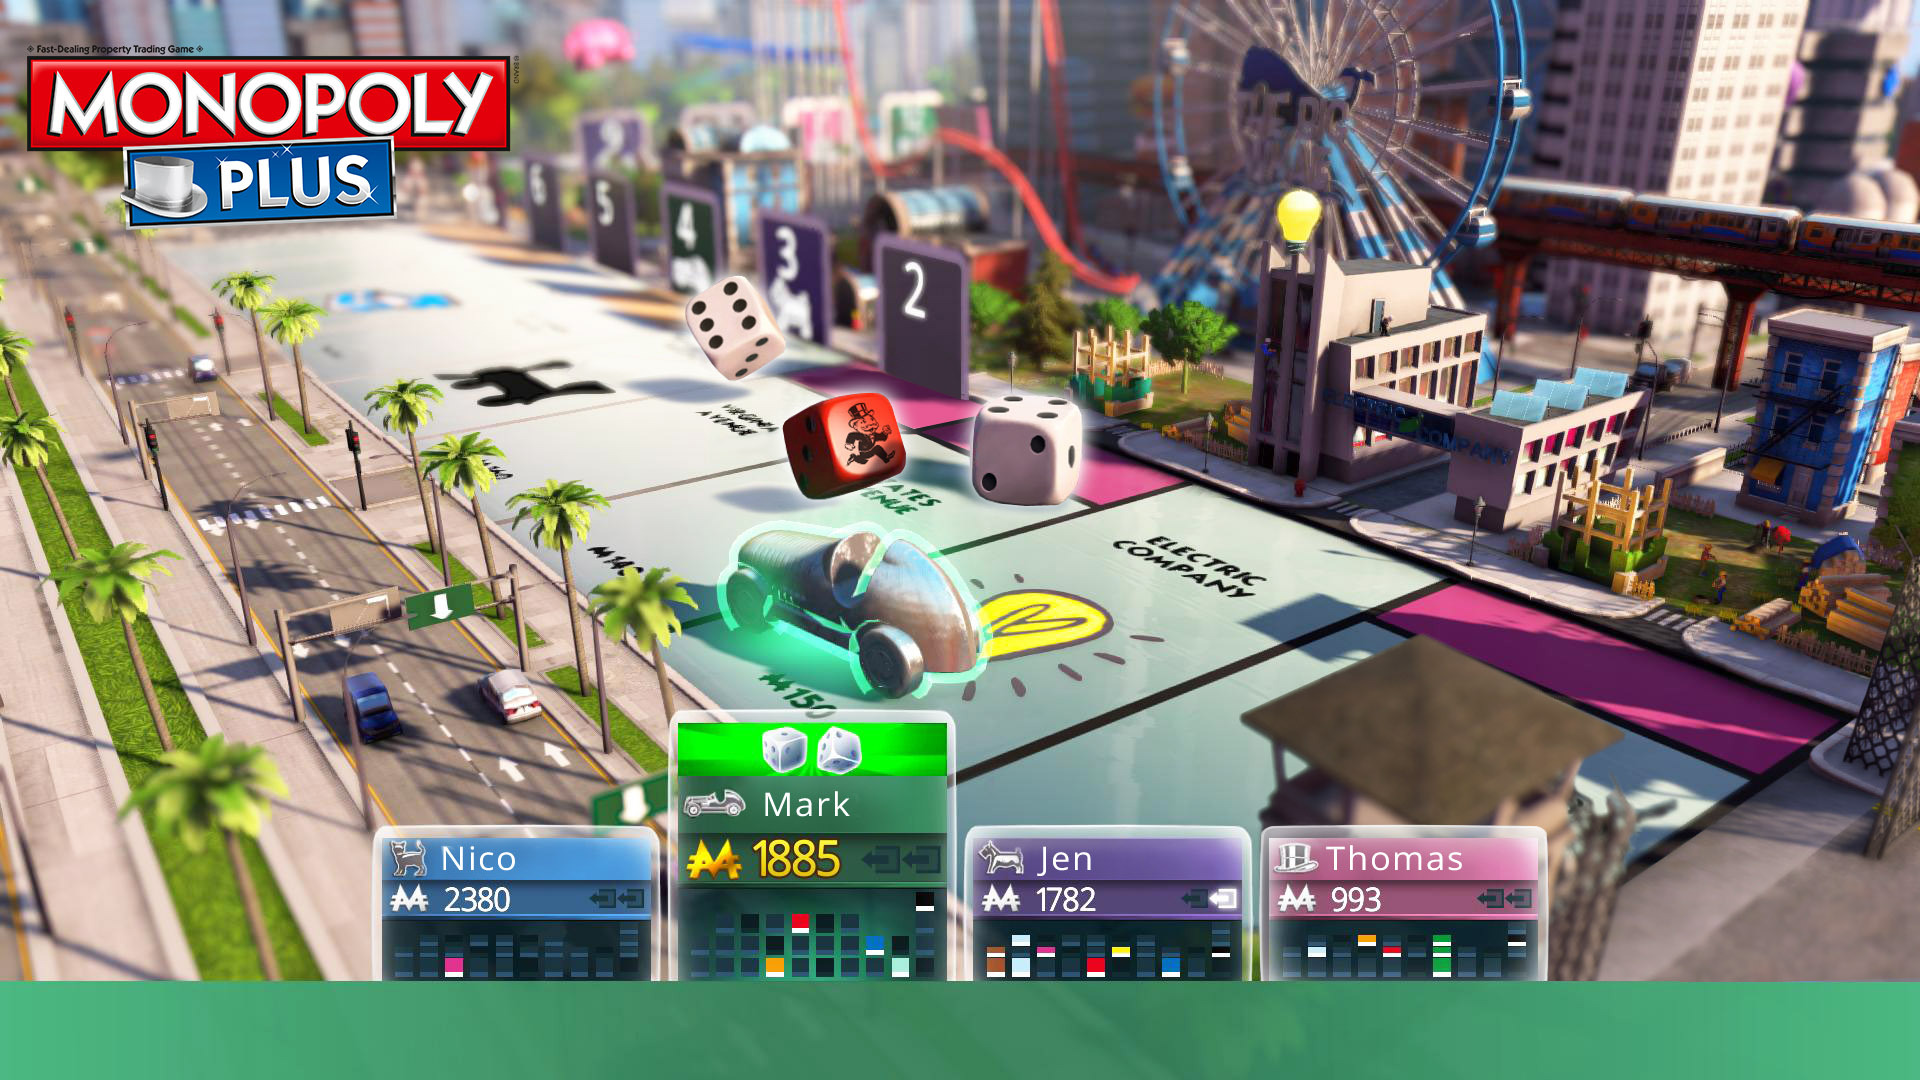 Hasbro Game Channel is the destination for family game entertainment on consoles with new ways to play your favorite classics such as Monopoly, Trivial Pursuit, Risk and more. (Photo: Business Wire)